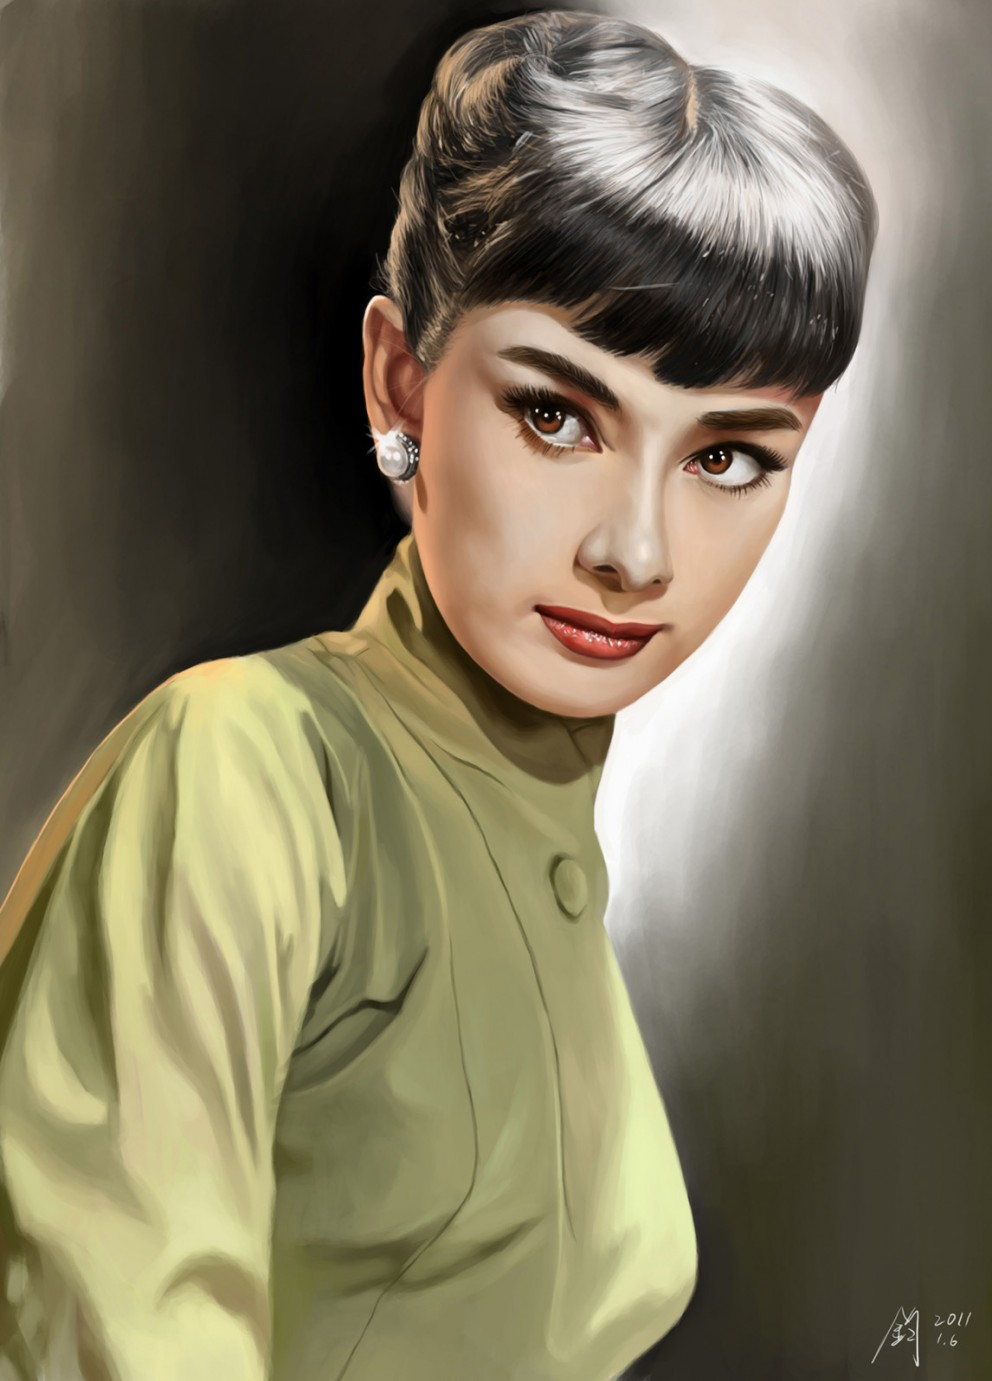 audrey hepburn - digital paintings, movies